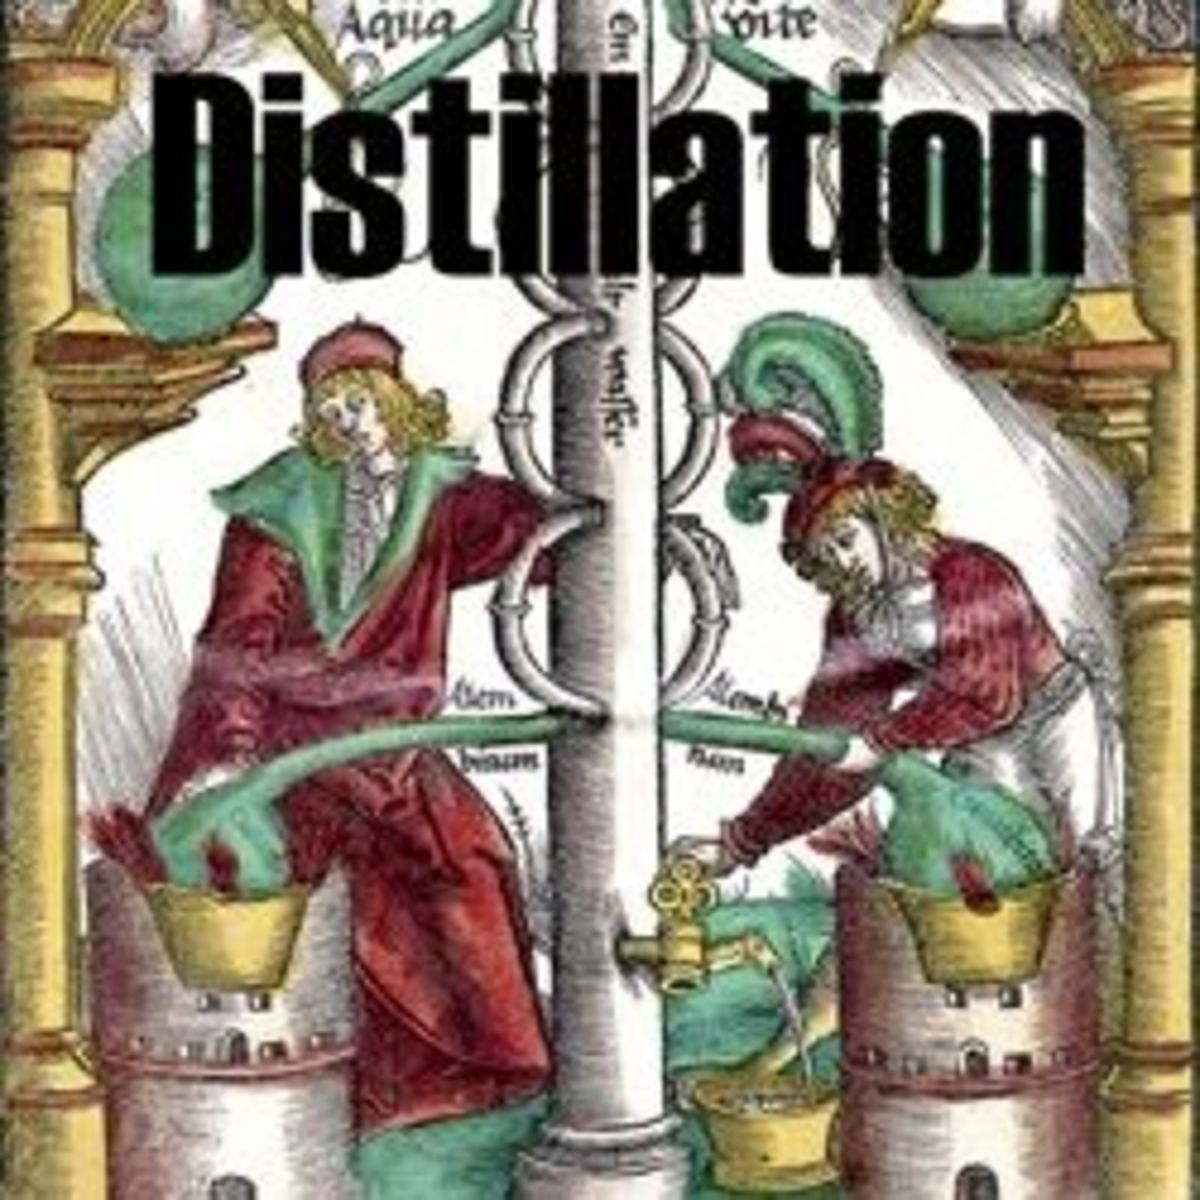 Art of Distillation